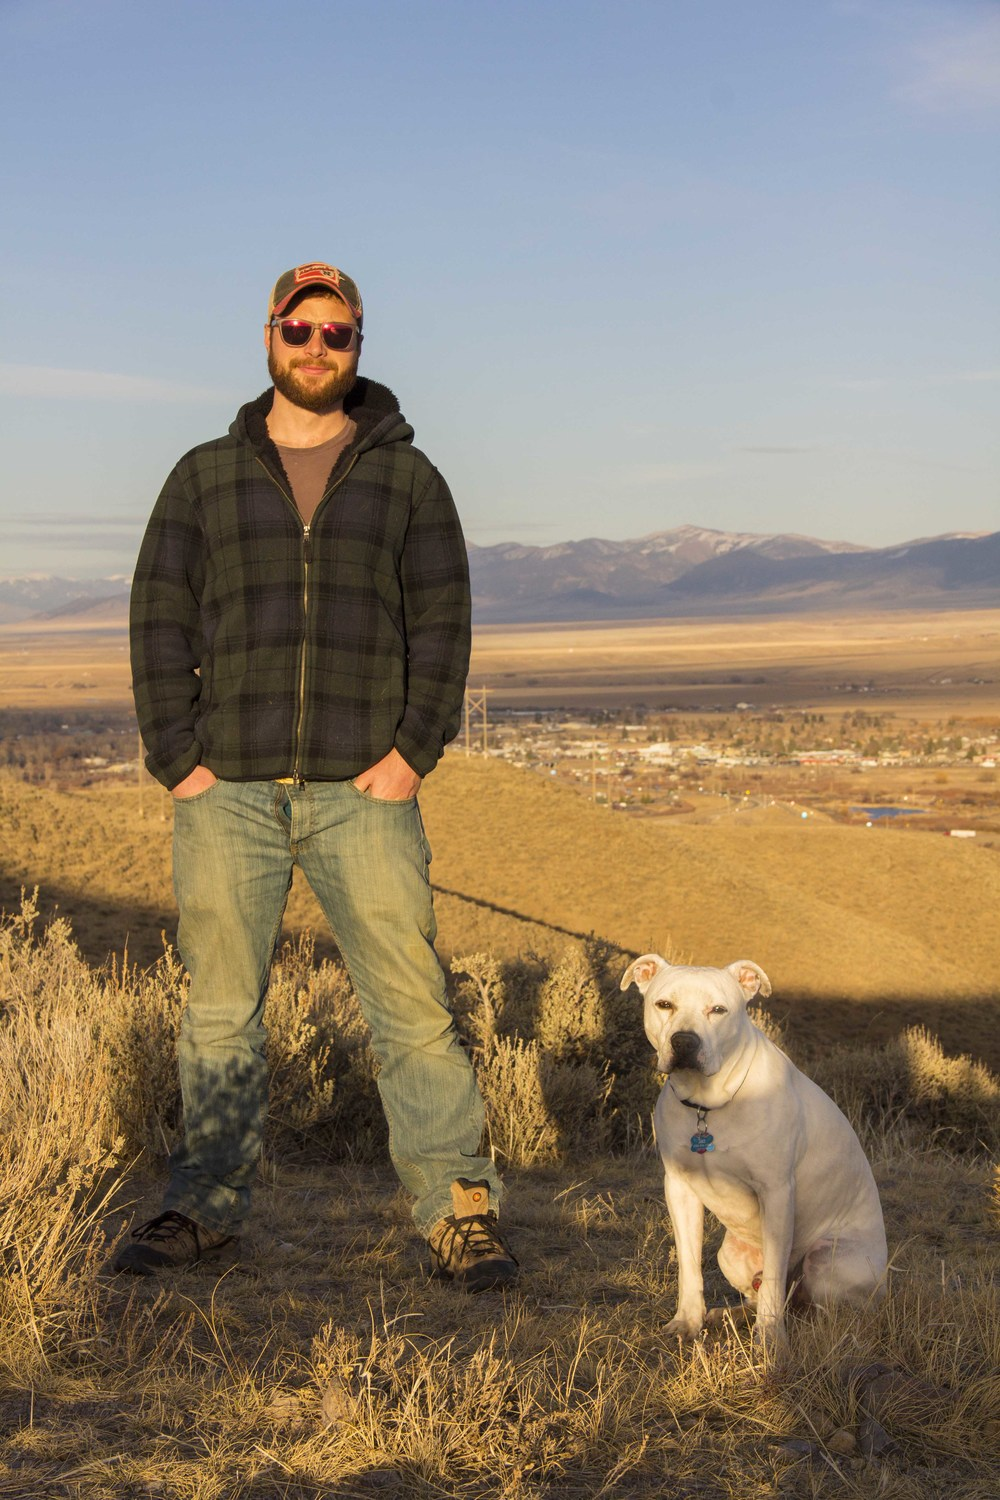 Chris Carparelli takes a break with his dog Jibz while hiking to the Dillon Town Overlook.